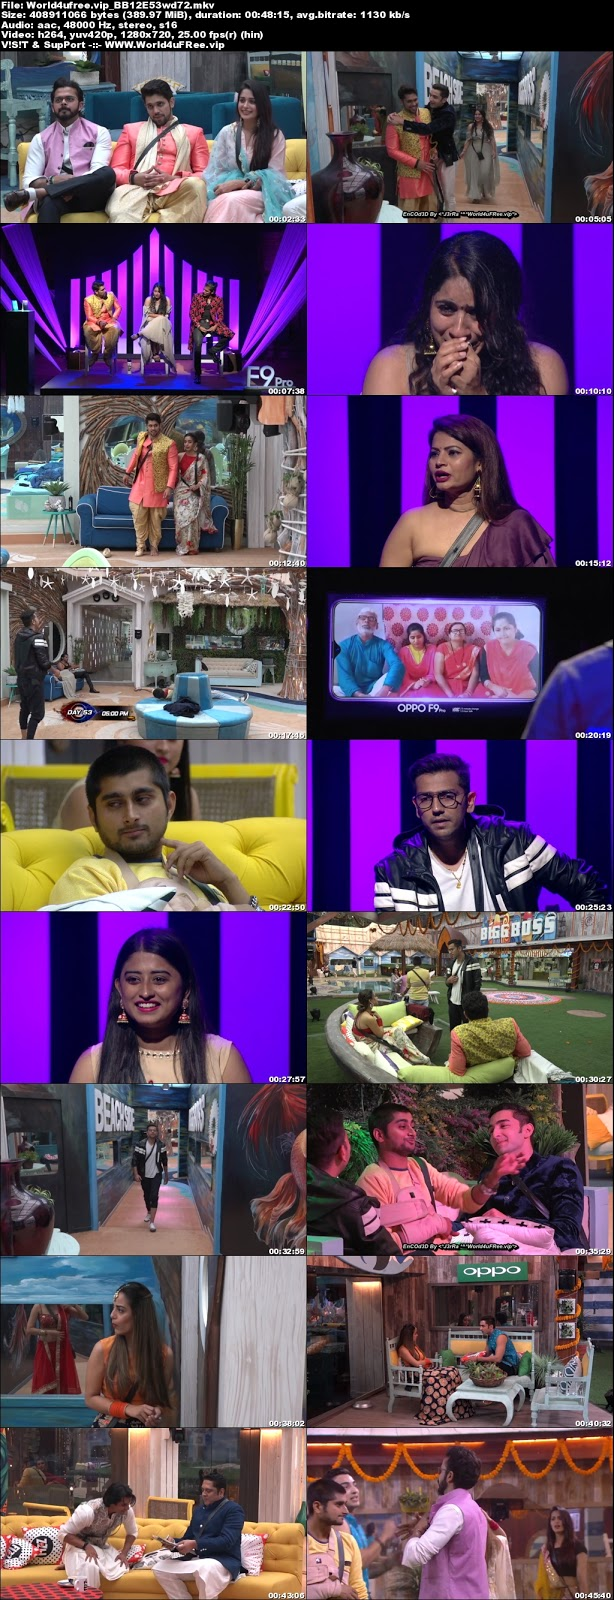 Bigg Boss 12 Episode 53 08 November 2018 720p WEBRip 400Mb x264 world4ufree.vip tv show Episode 53 08 november 2018 world4ufree.vip 300mb 250mb 300mb compressed small size free download or watch online at world4ufree.vip